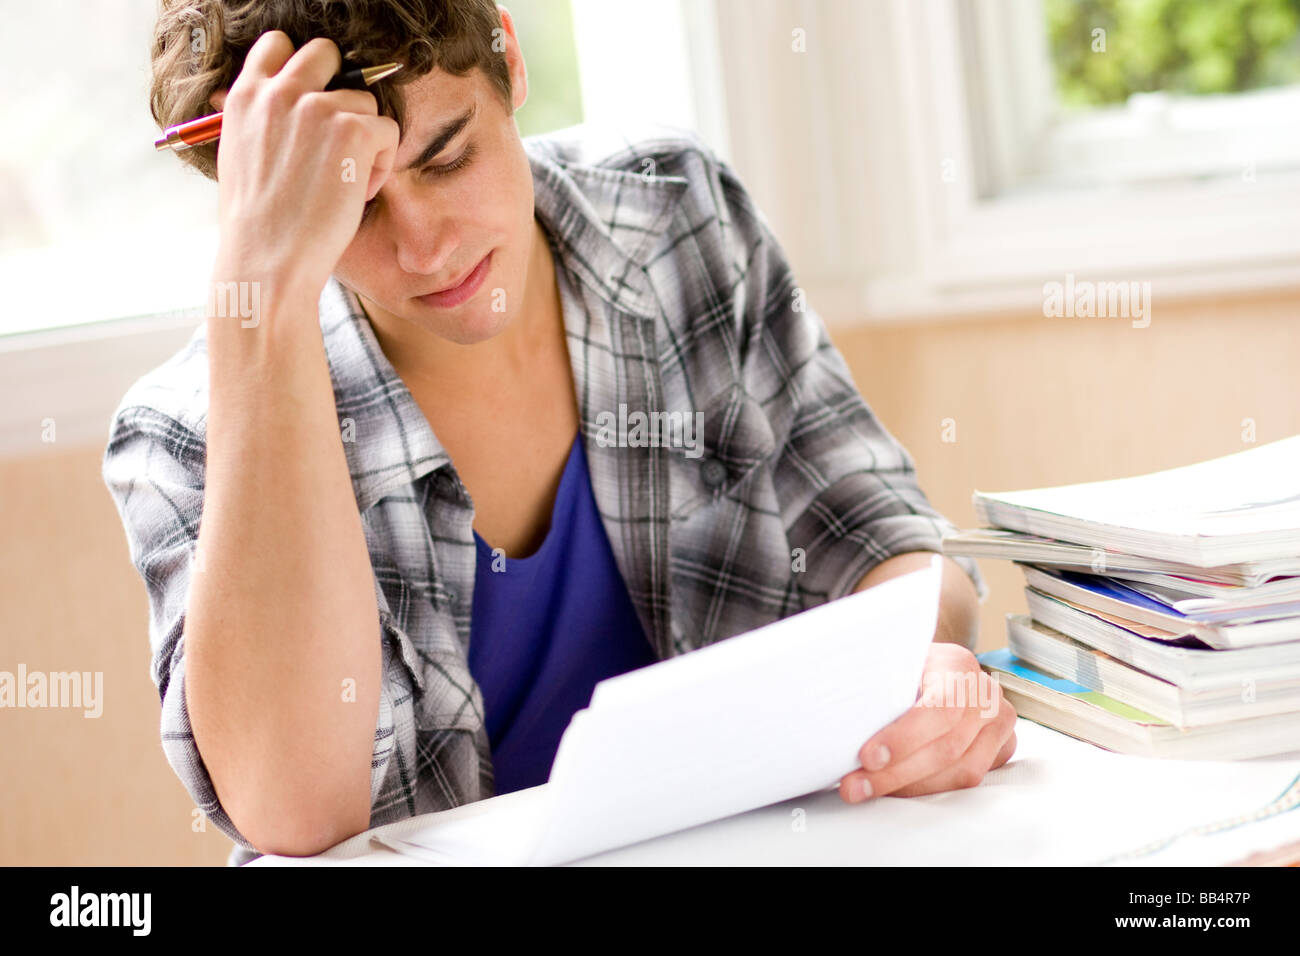 Male student studying - Stock Image